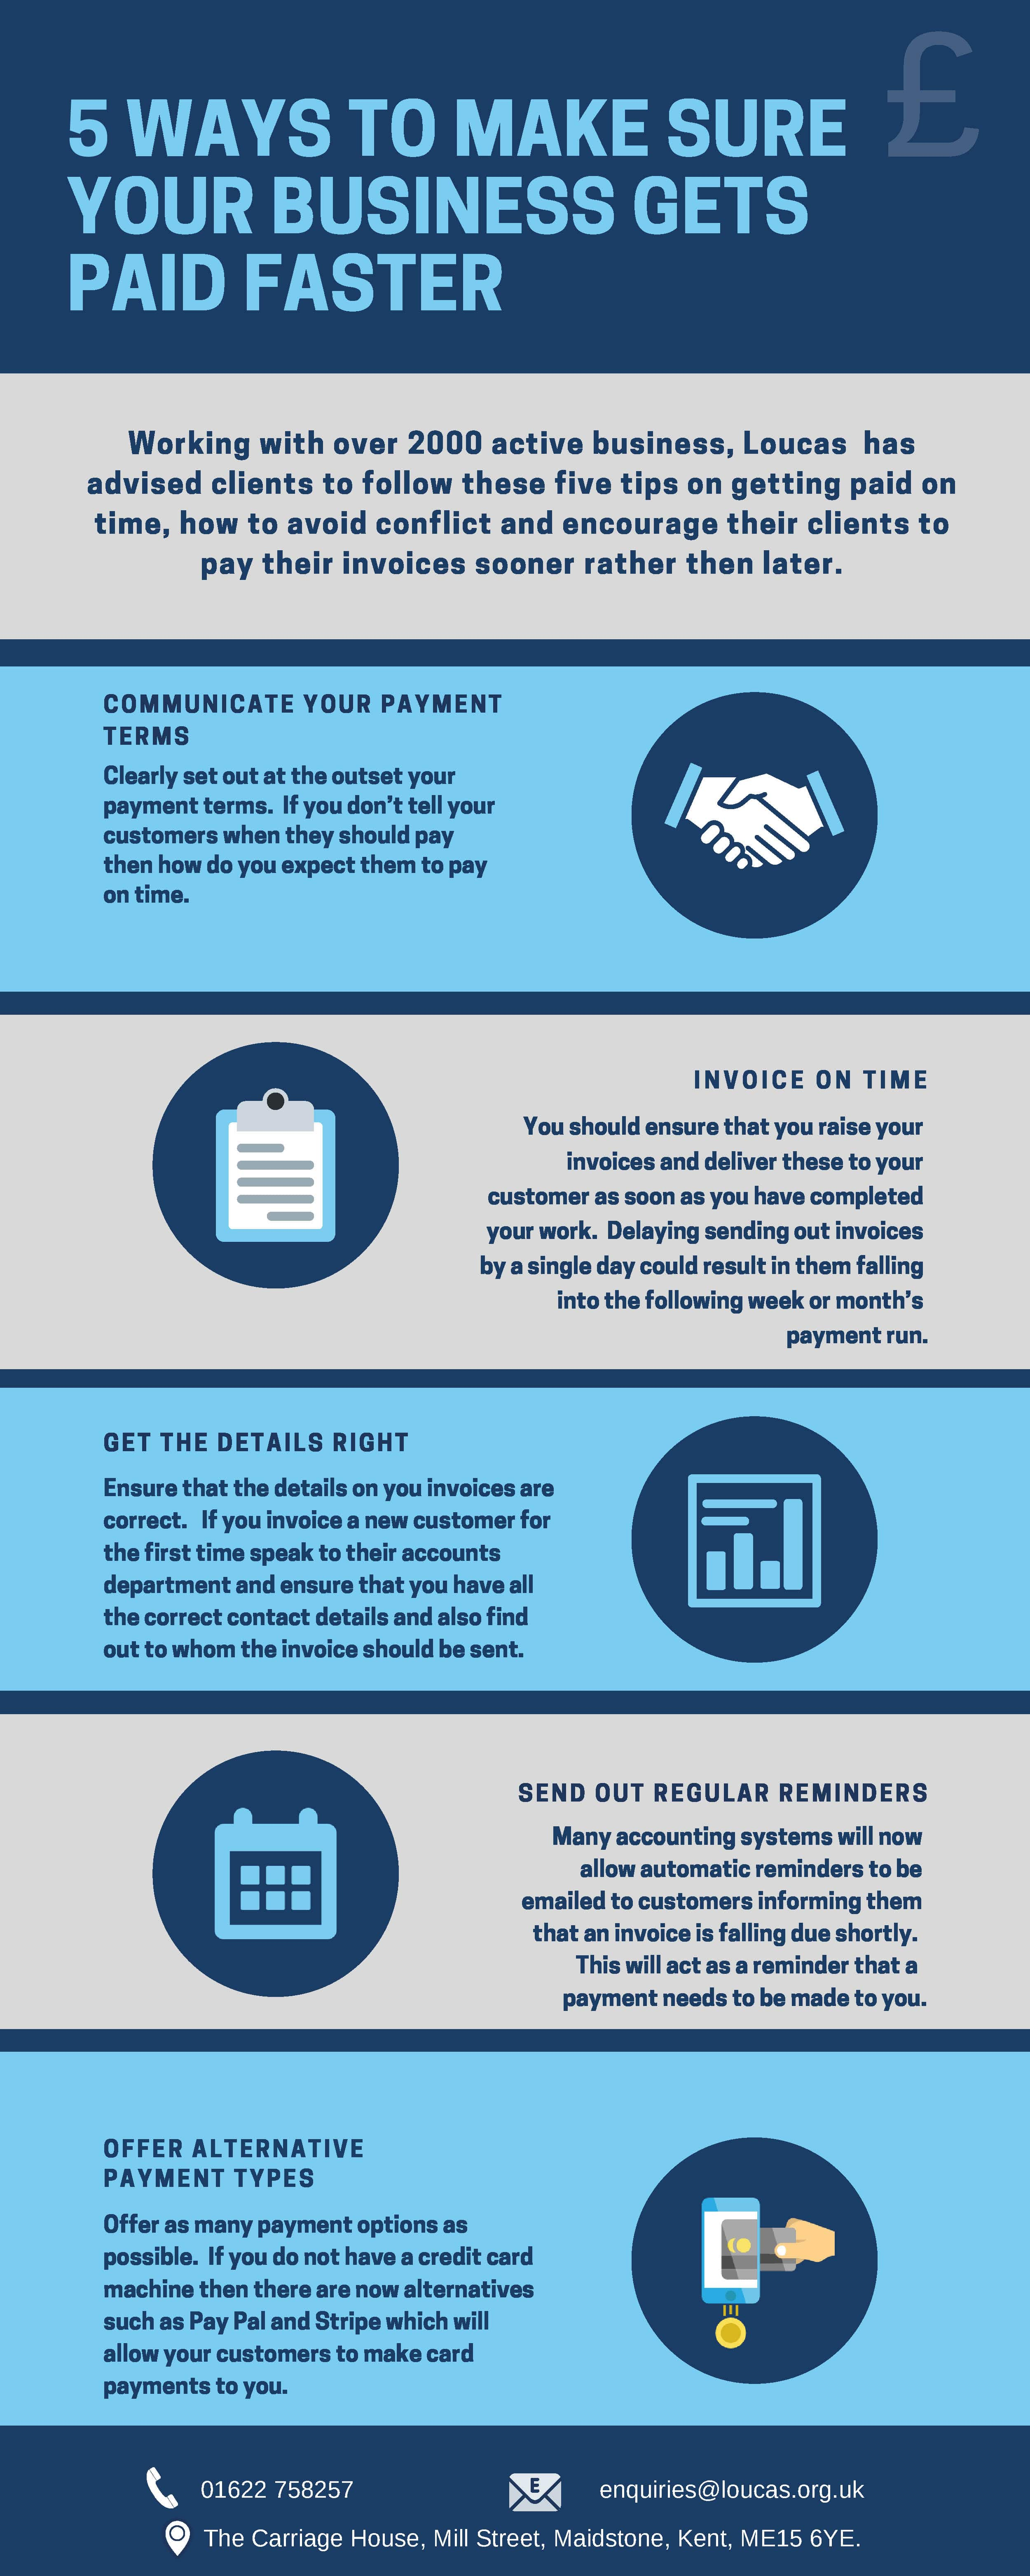 5-Ways-to-Make-Sure-your-Business-Gets-Paid-Faster